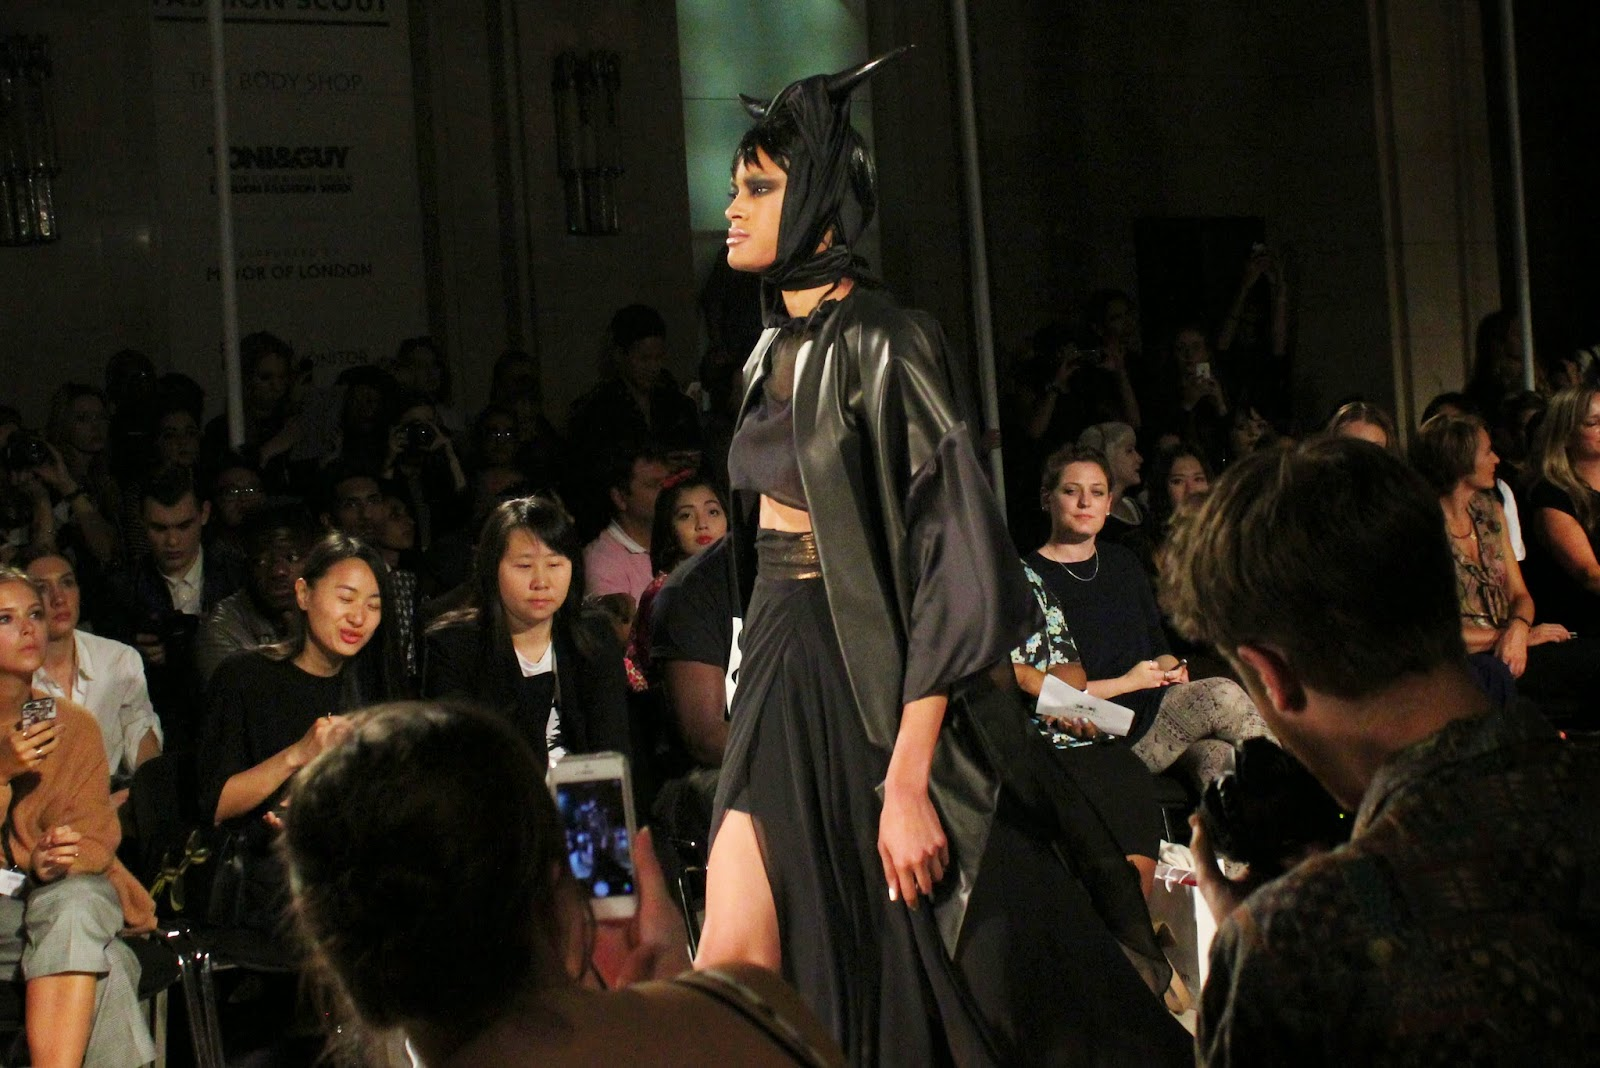 london-fashion-week-2014-lfw-spring-summer-2015-blogger-fashion-Dora-Abodi-catwalk-models-freemasons hall-fashion-scout-top-maxi-skirt-jacket-headdress-horns